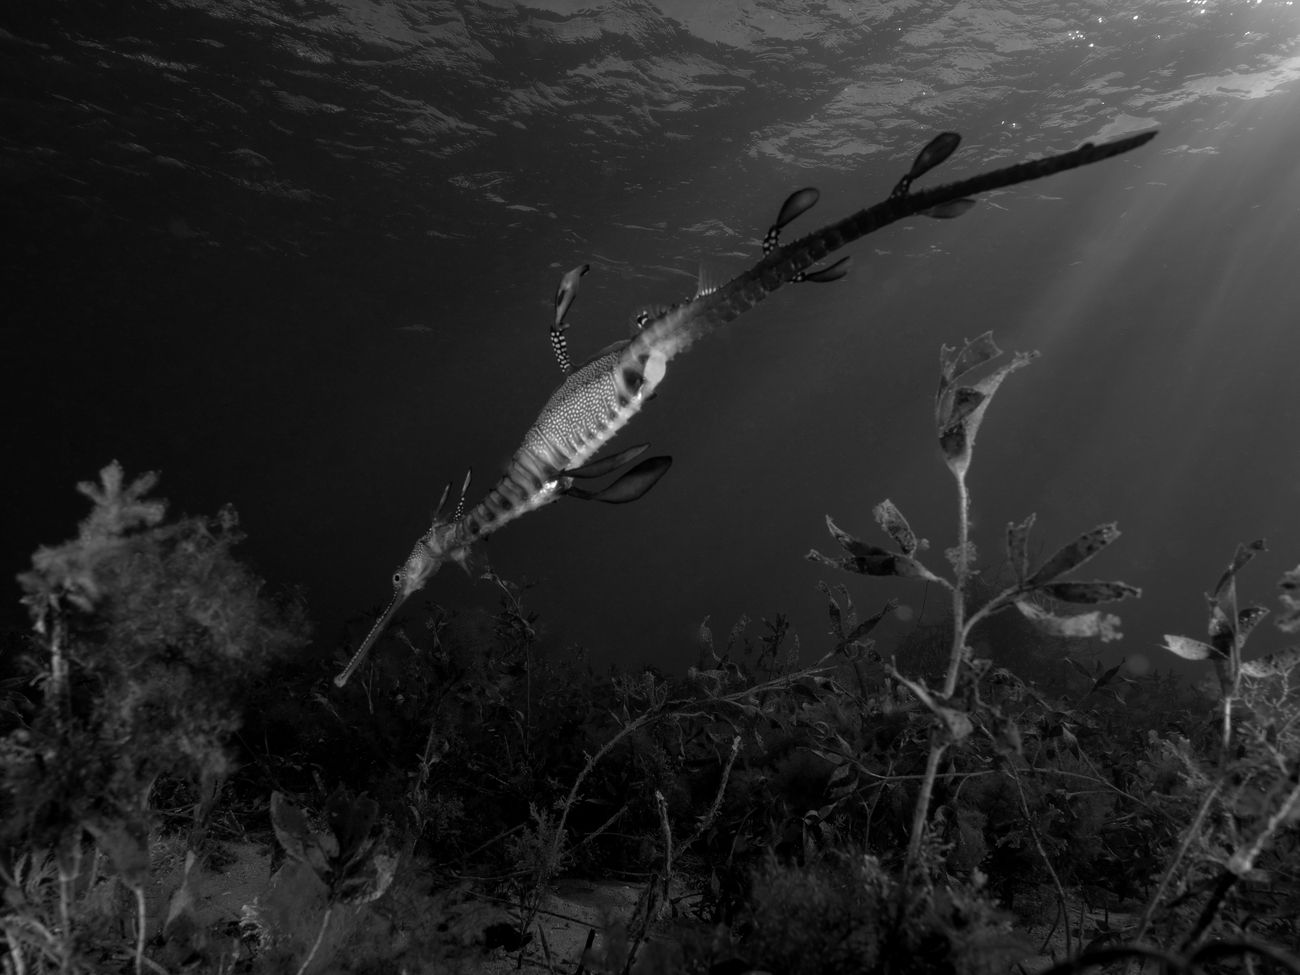 another weedy seadragon shot. playing around with different angles and effects. with the water being a bit milky this day it was good to pick up the light rays with the dragons